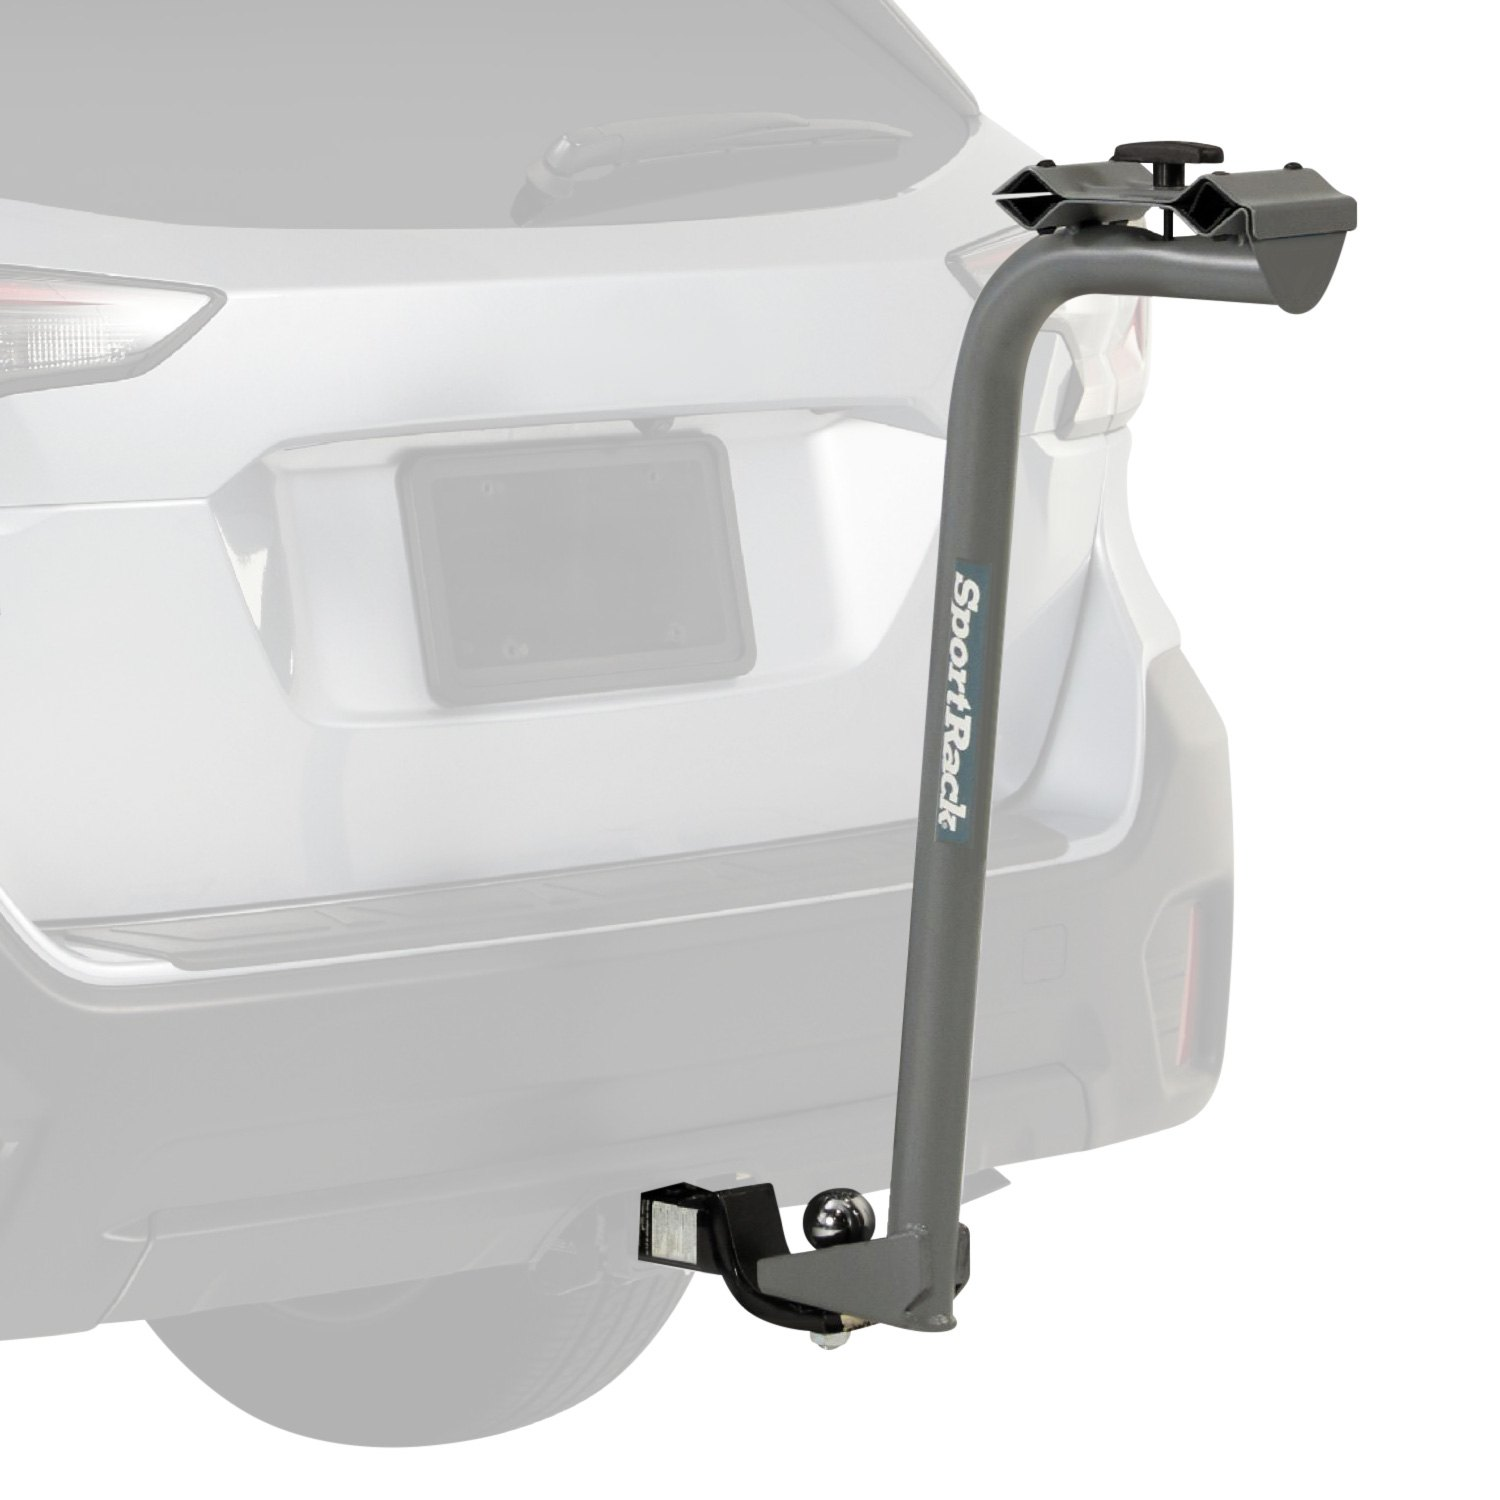 Sportrack 174 Sr2512 Pathway Tow Ball Mount Bike Rack For 2